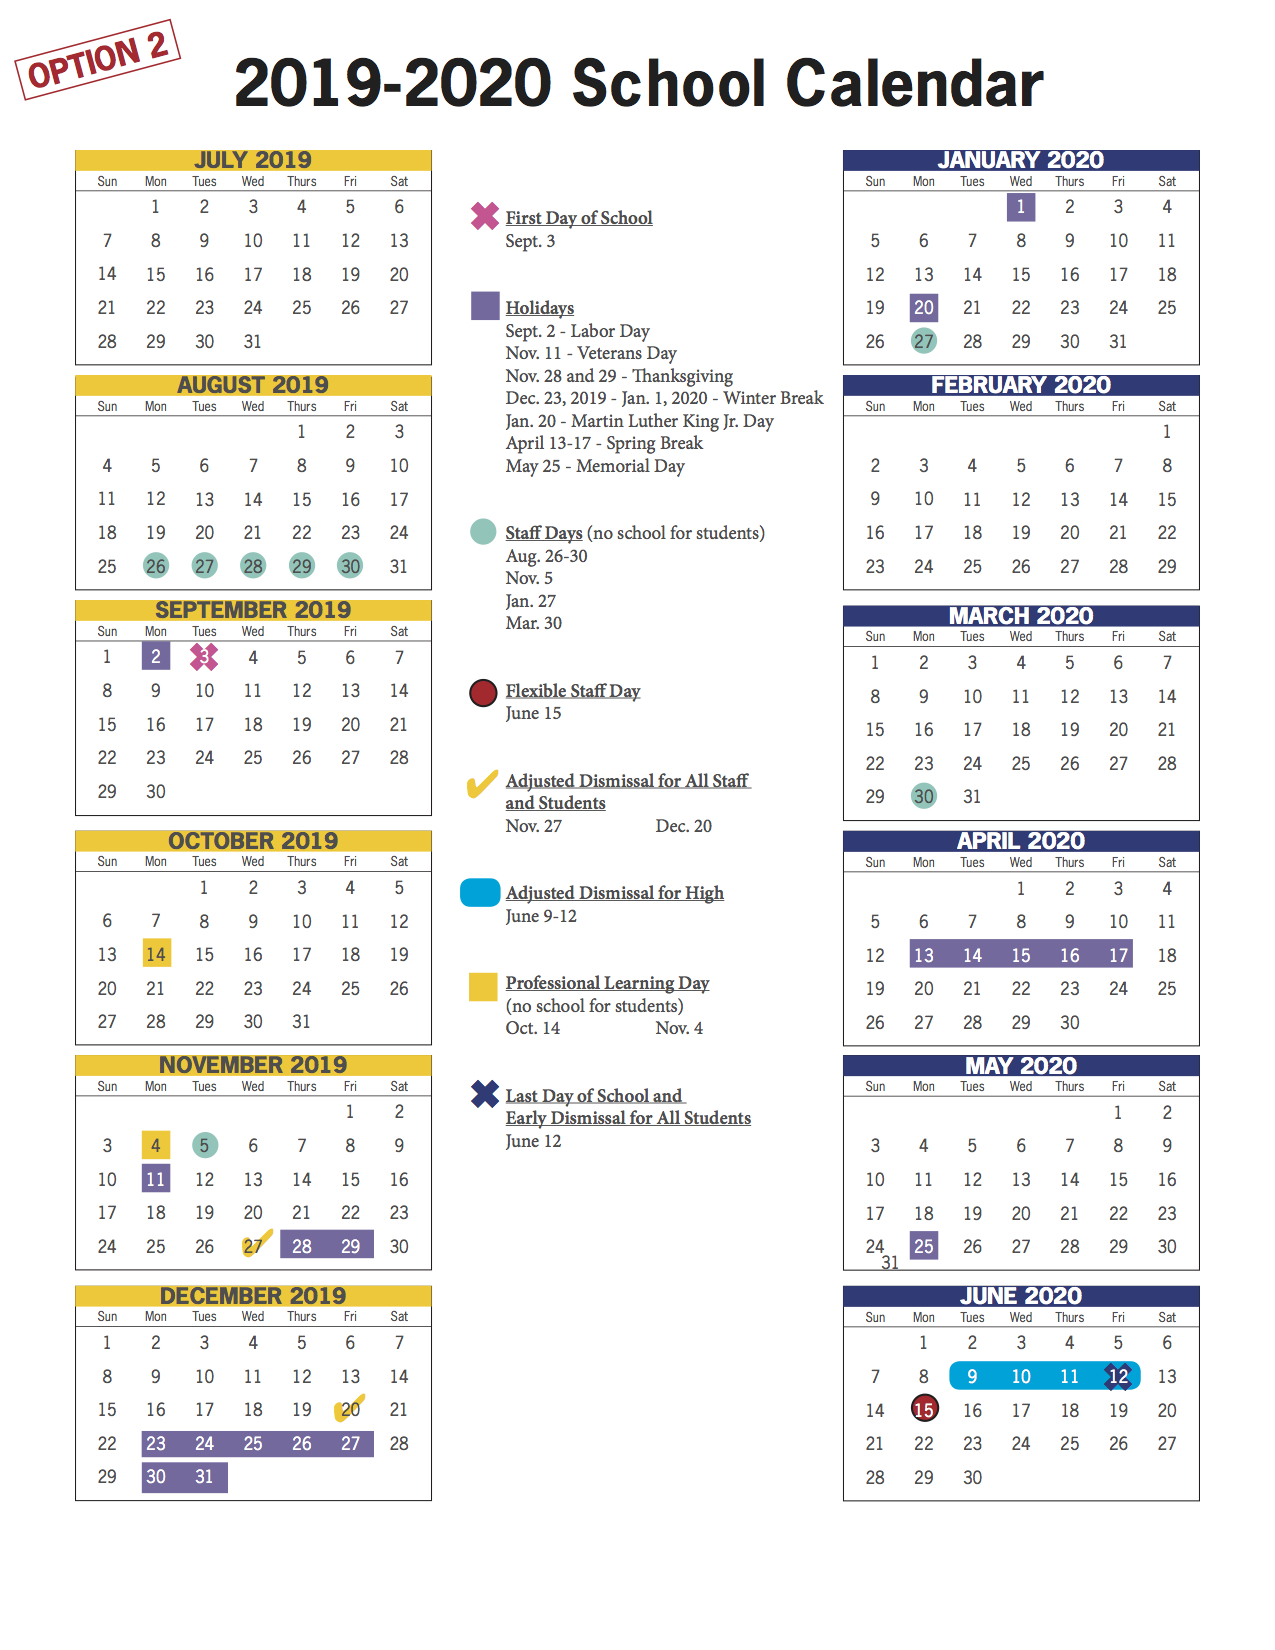 Vbcps E-Town Hall - 2018-2019 And 2019-2020 School Calendar regarding Va Beach Schools Staff Calendar